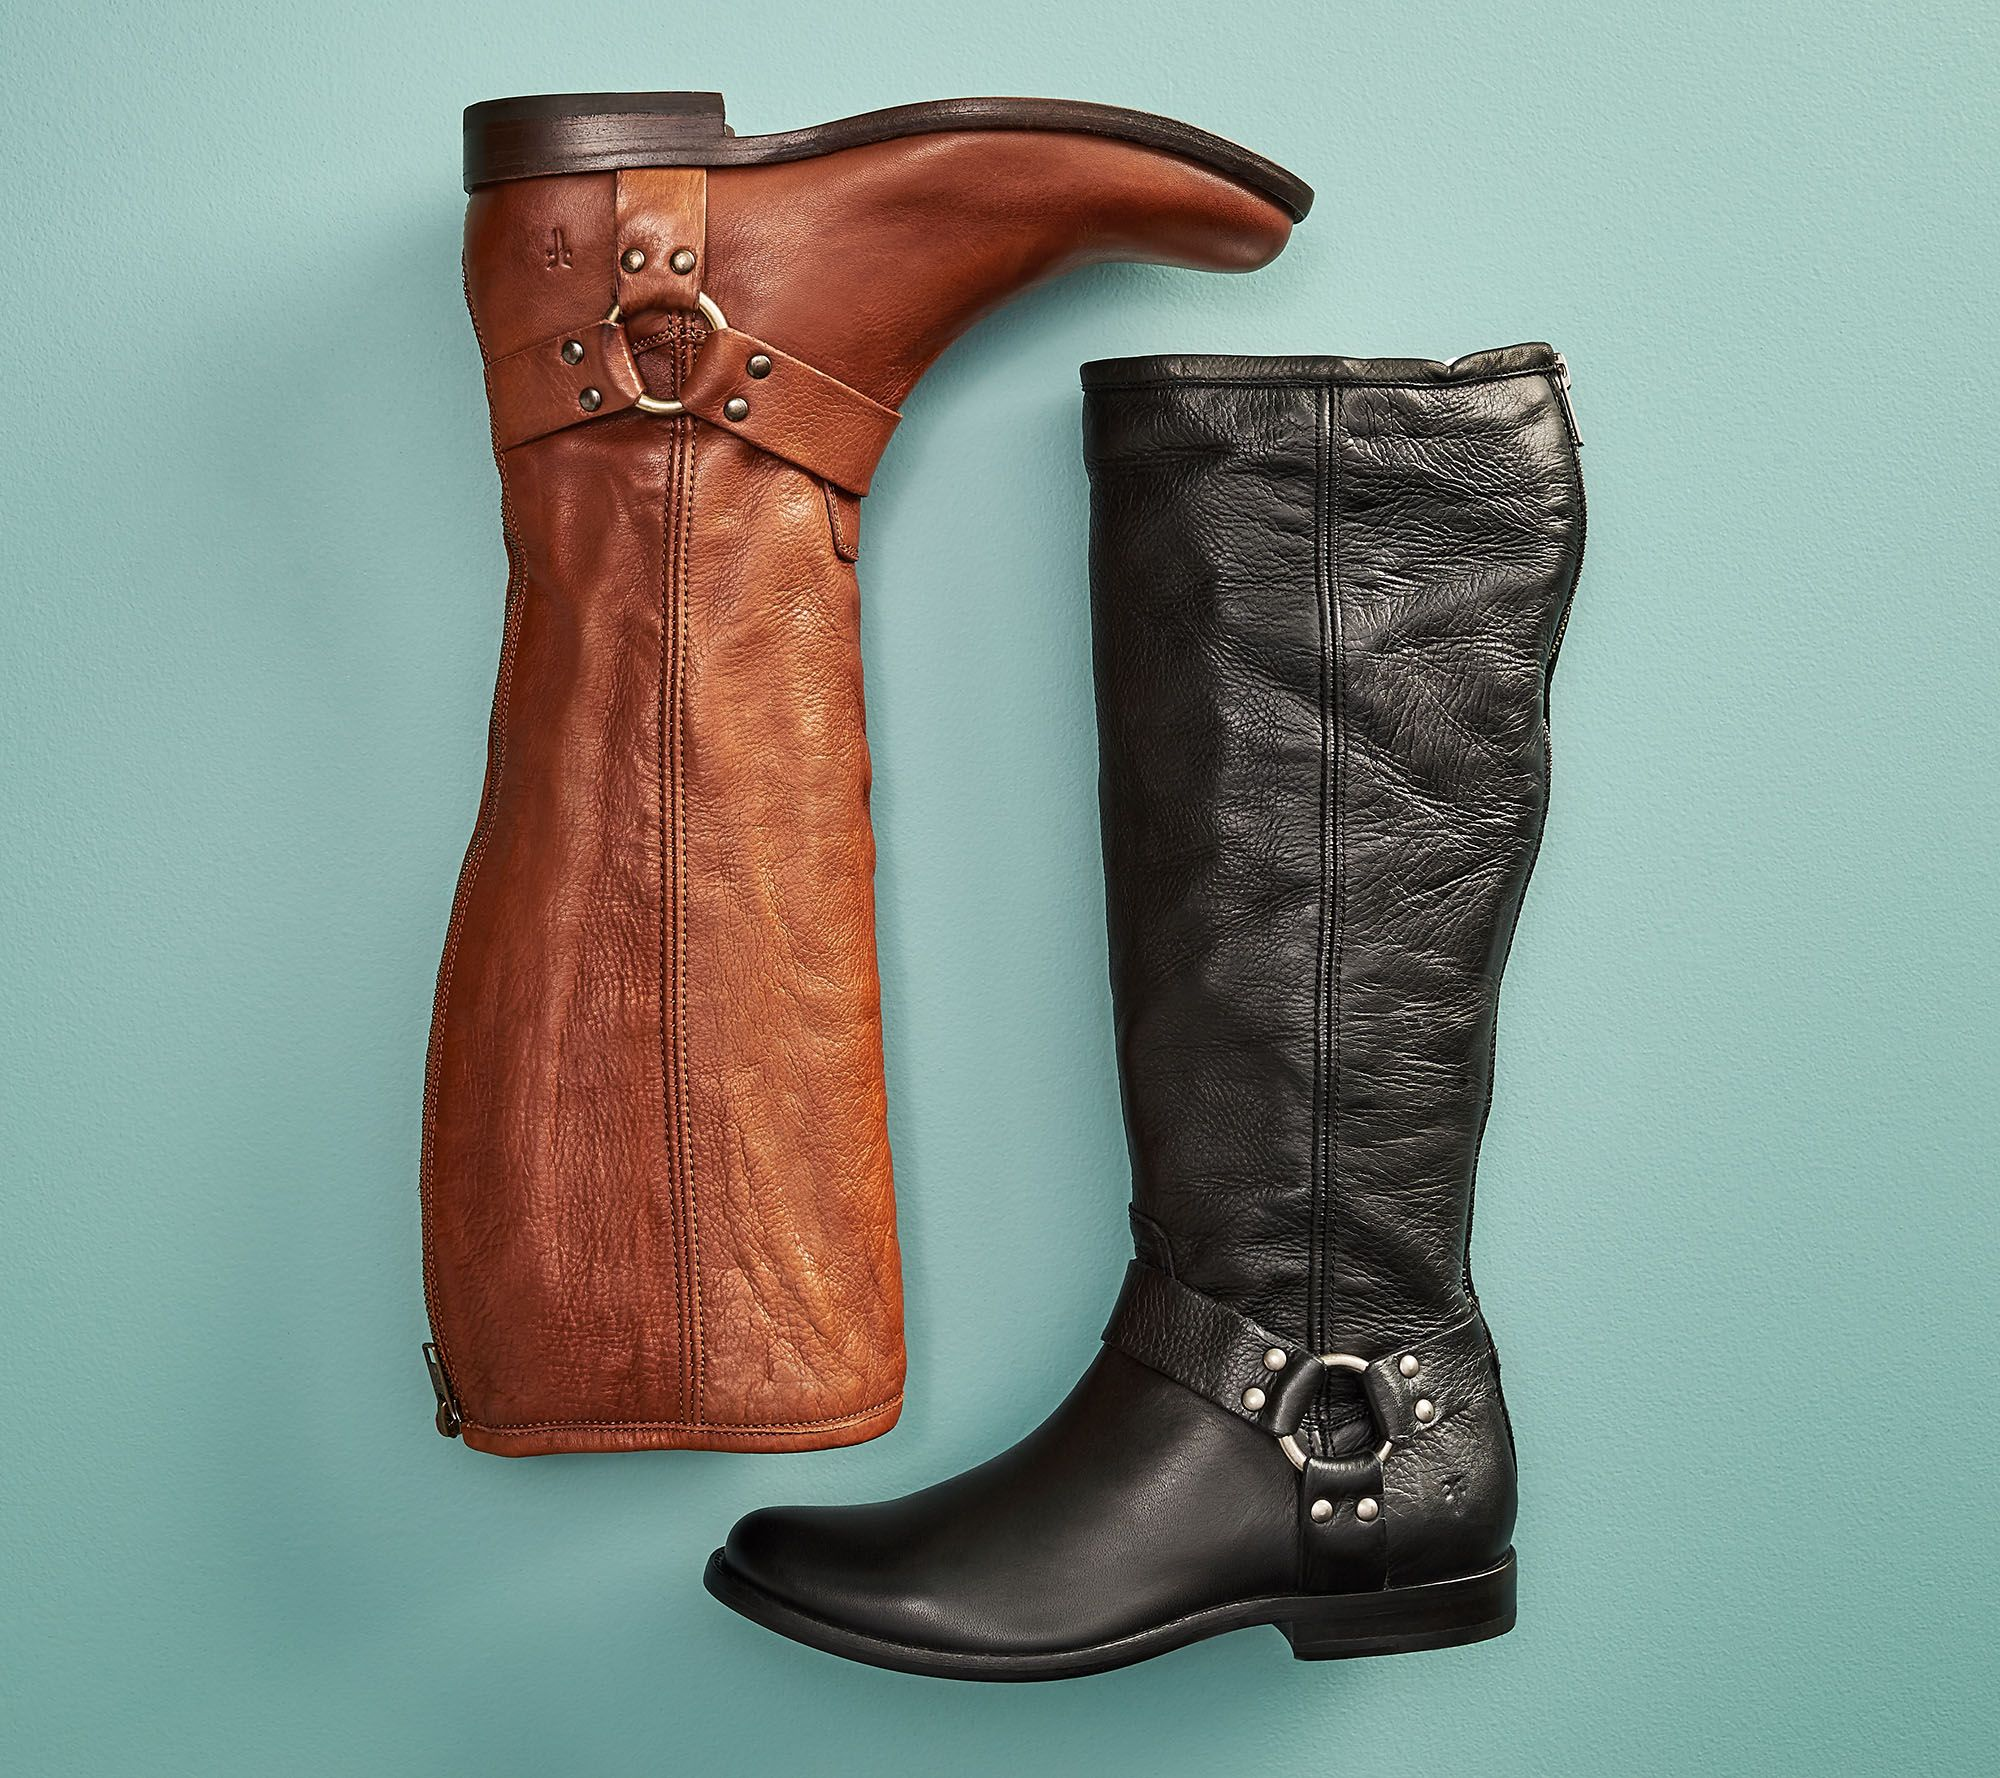 e62cb3af74b Frye Wide Calf Leather Tall Shaft Boots - Phillip Harness - Page 1 — QVC.com